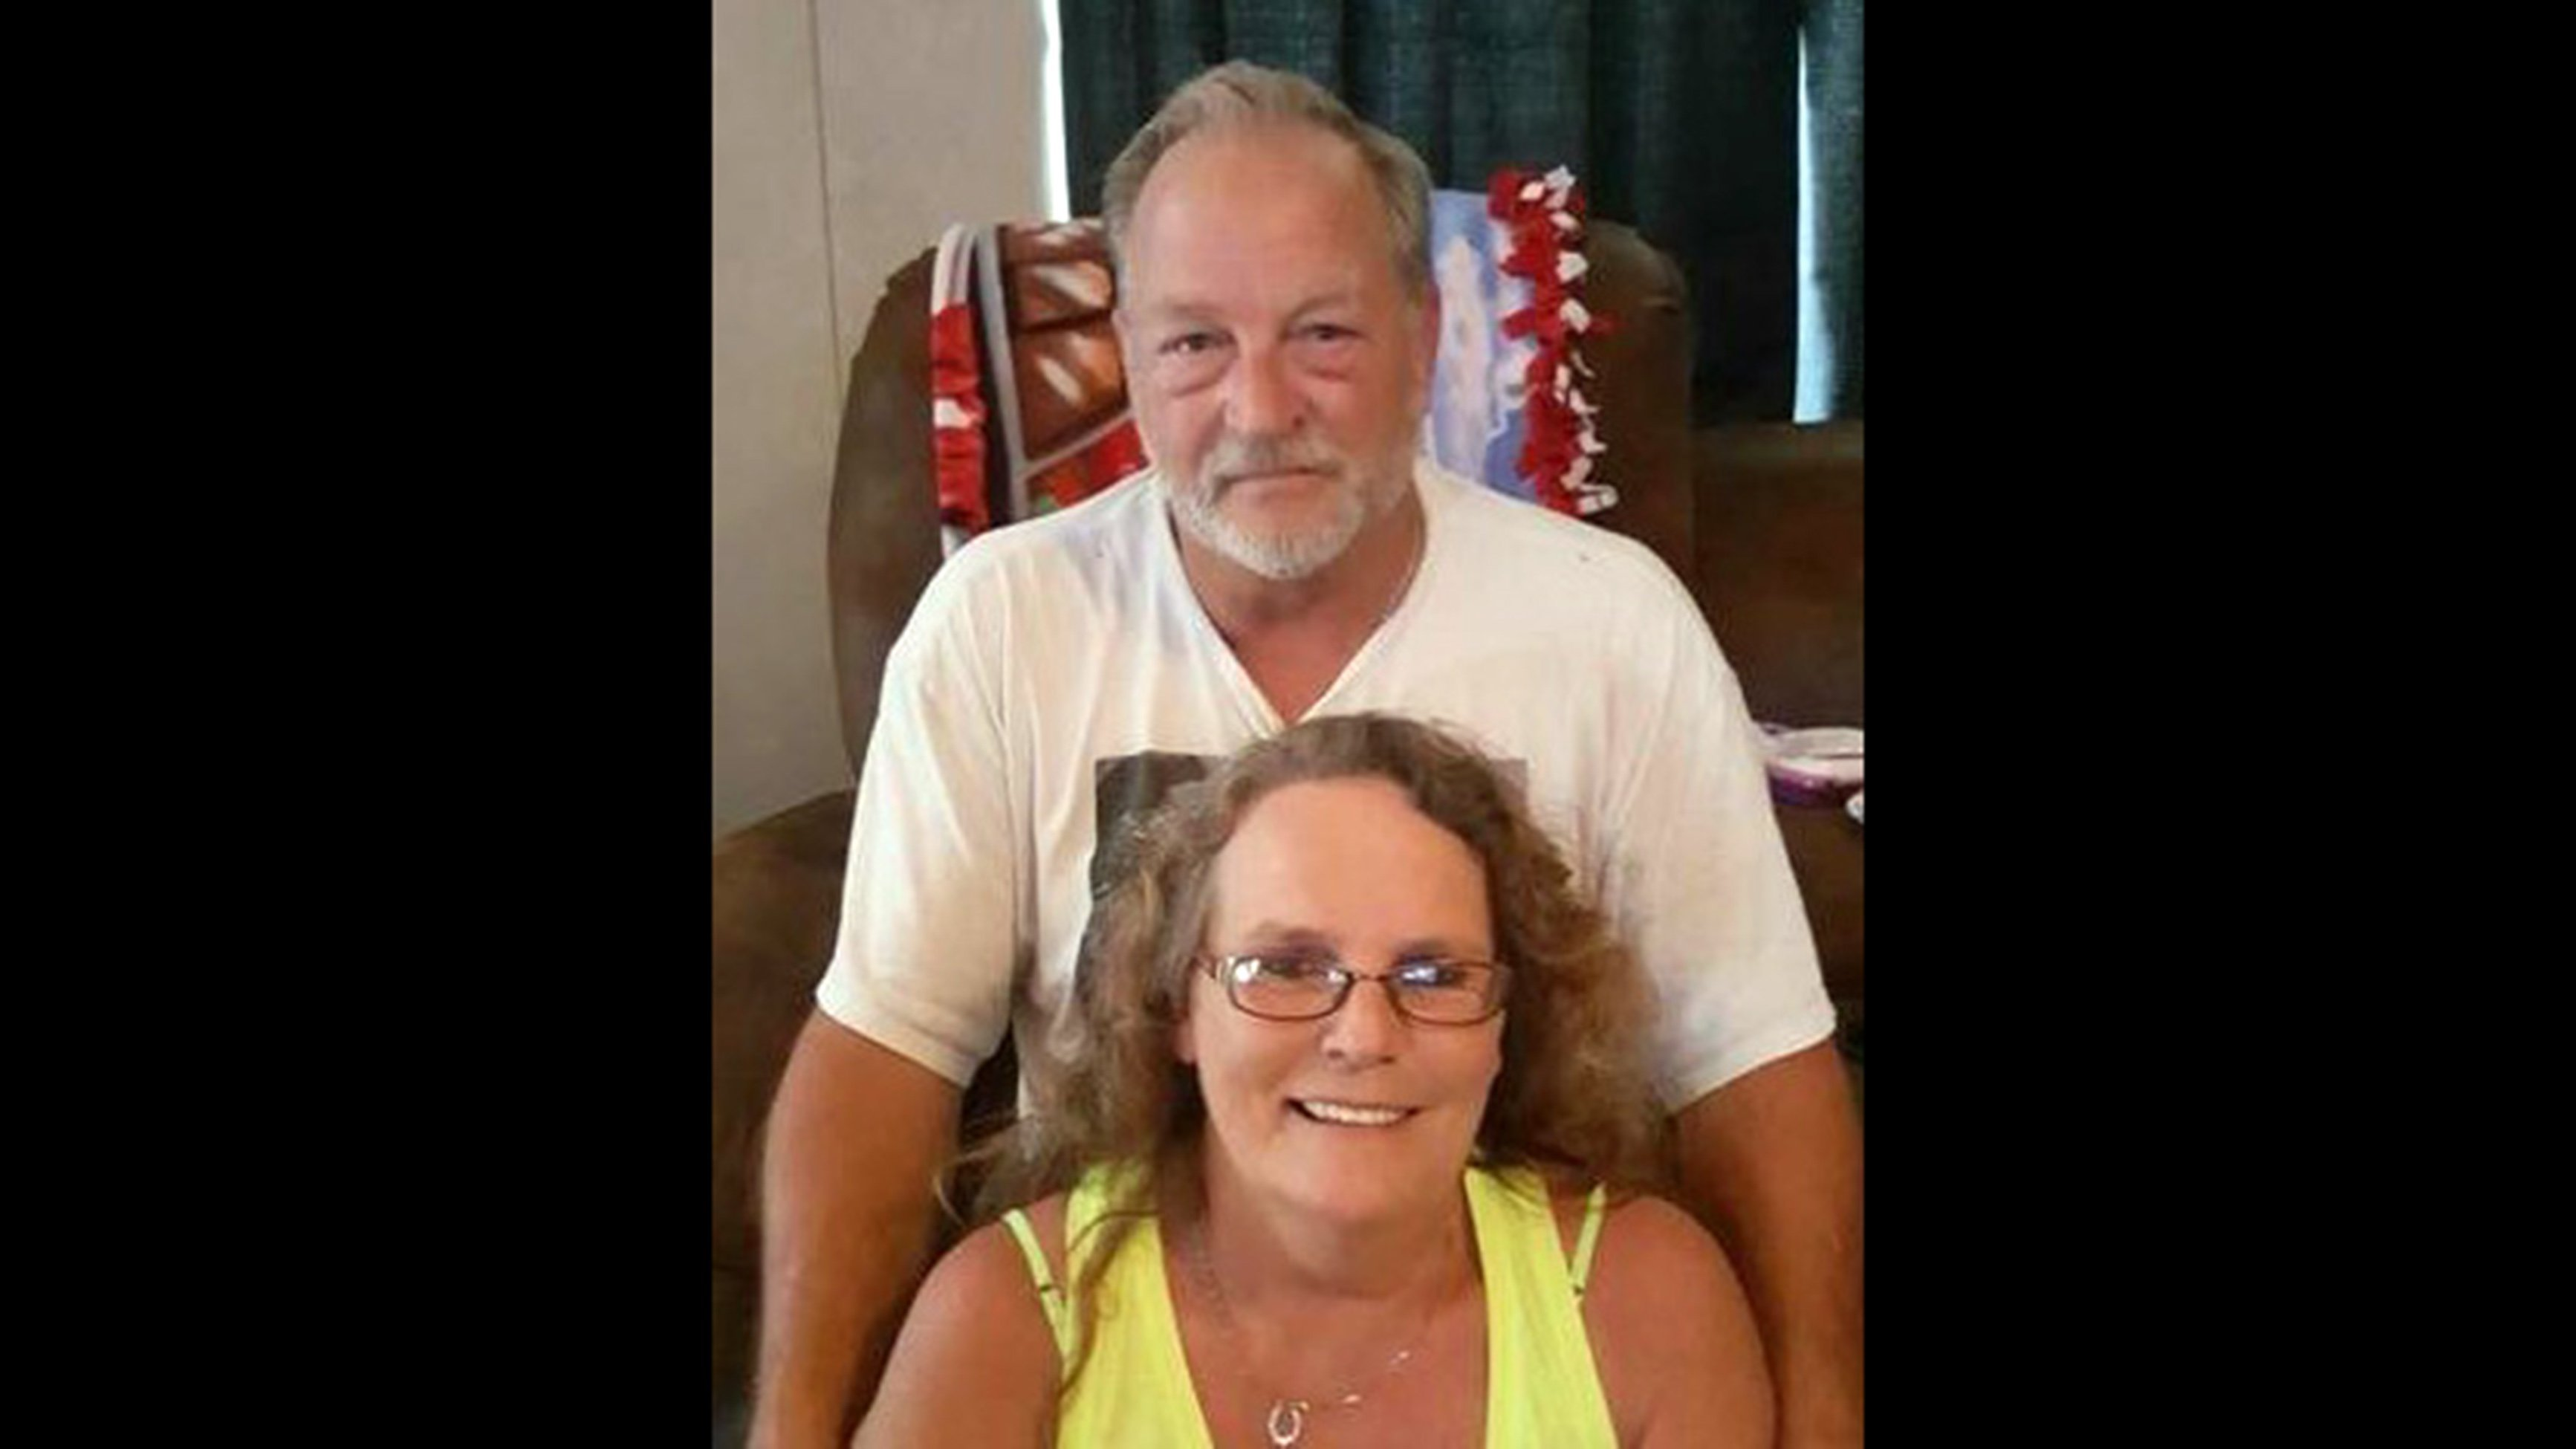 Ronald and Valerie Kay Wilkson met in high school and married in 1979. The couple died together at the hands of Valerie Kay Wilkson's distant relative, Michael Vance. Credit:Courtesy Wilkson Family